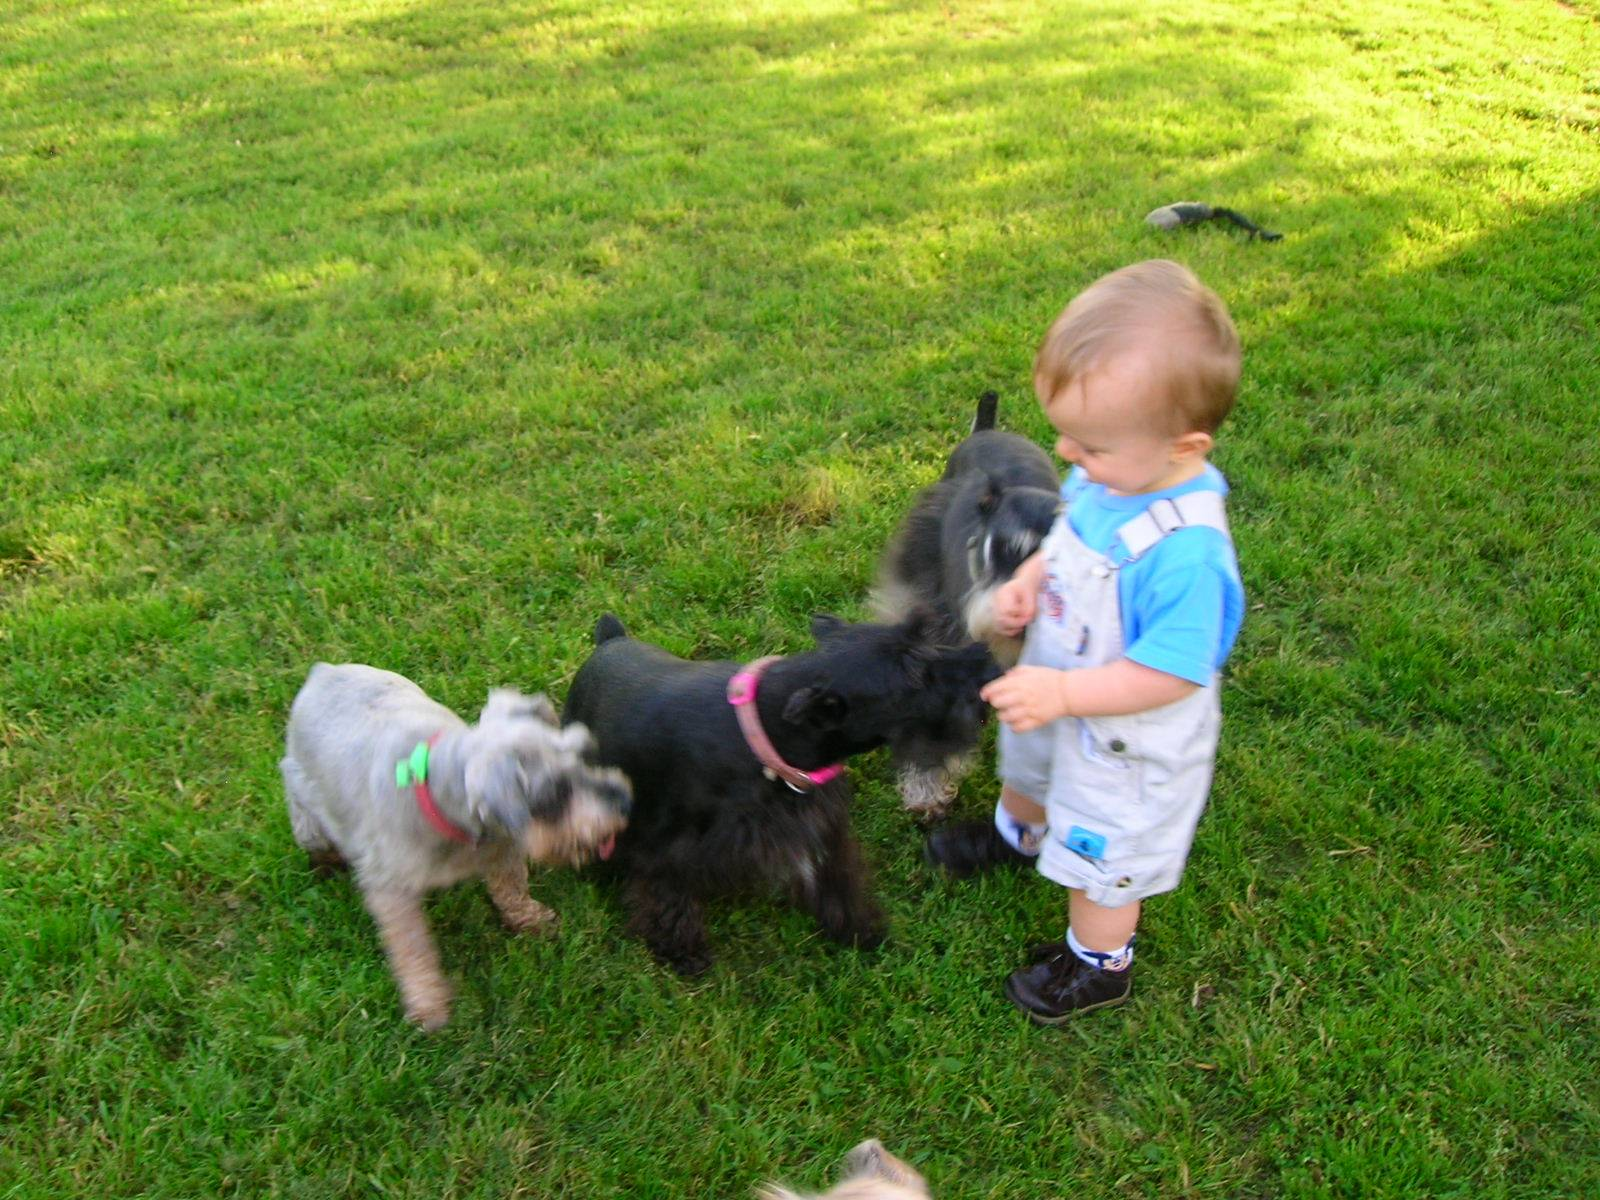 Jonah playing with dogs